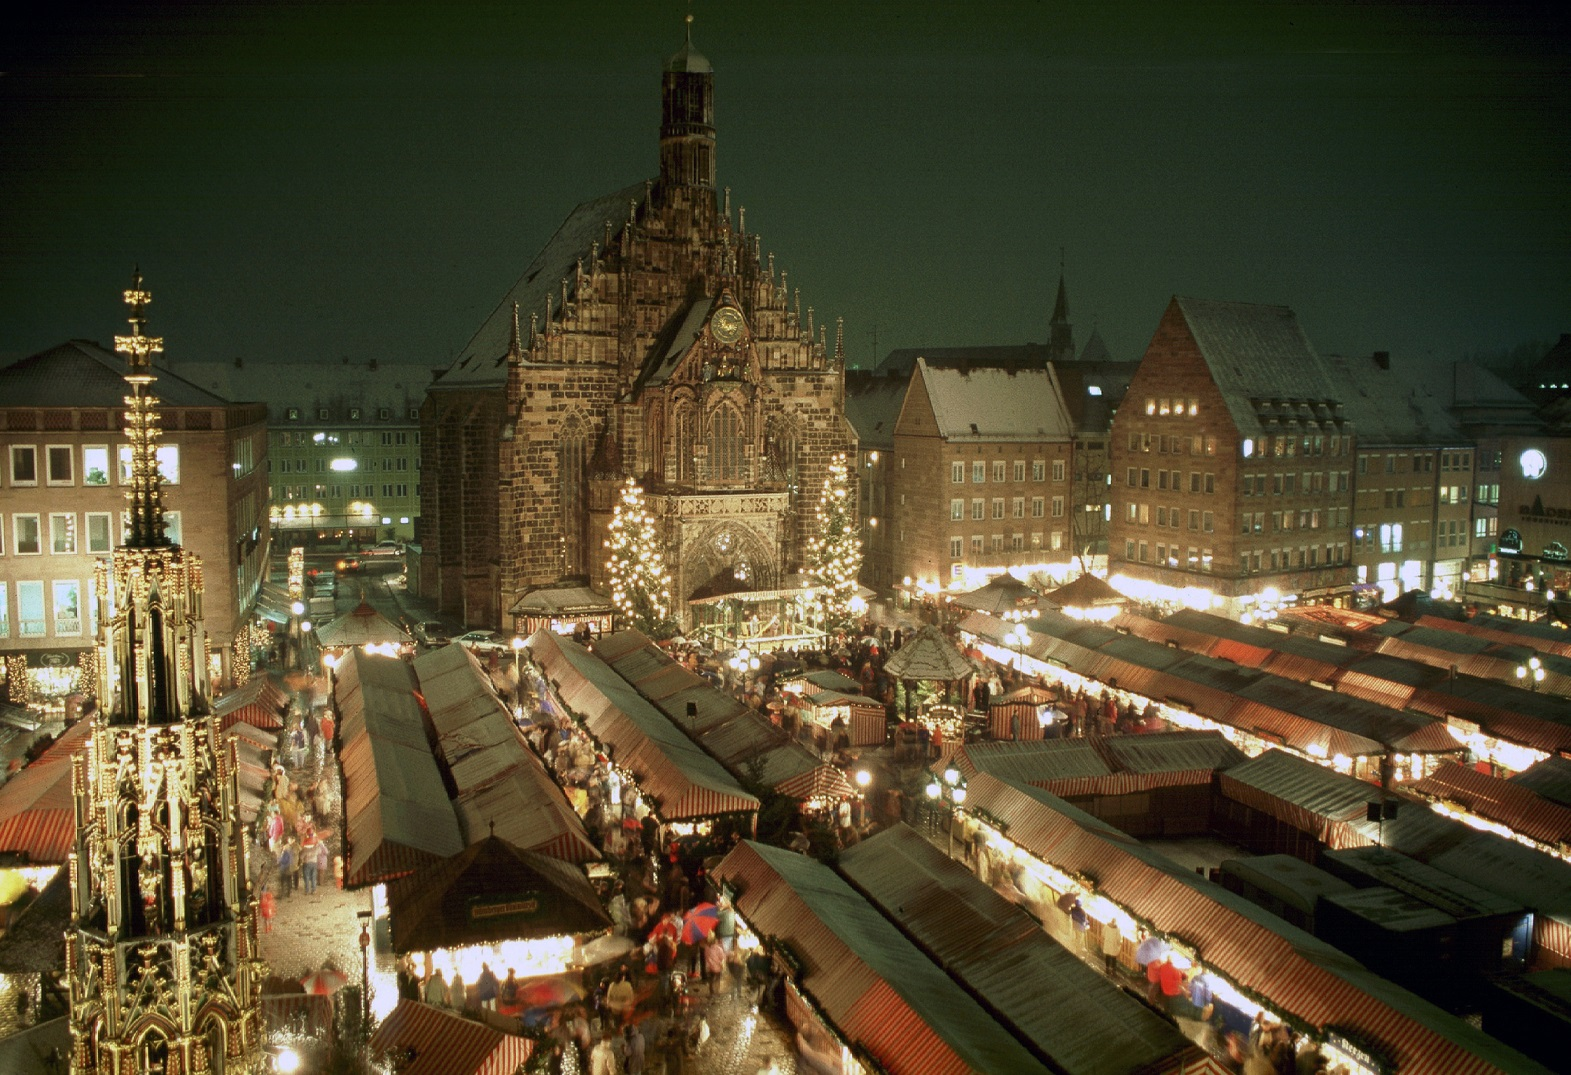 Nürnberger Christkindlesmarkt (Photo: Uli Kowatsch)